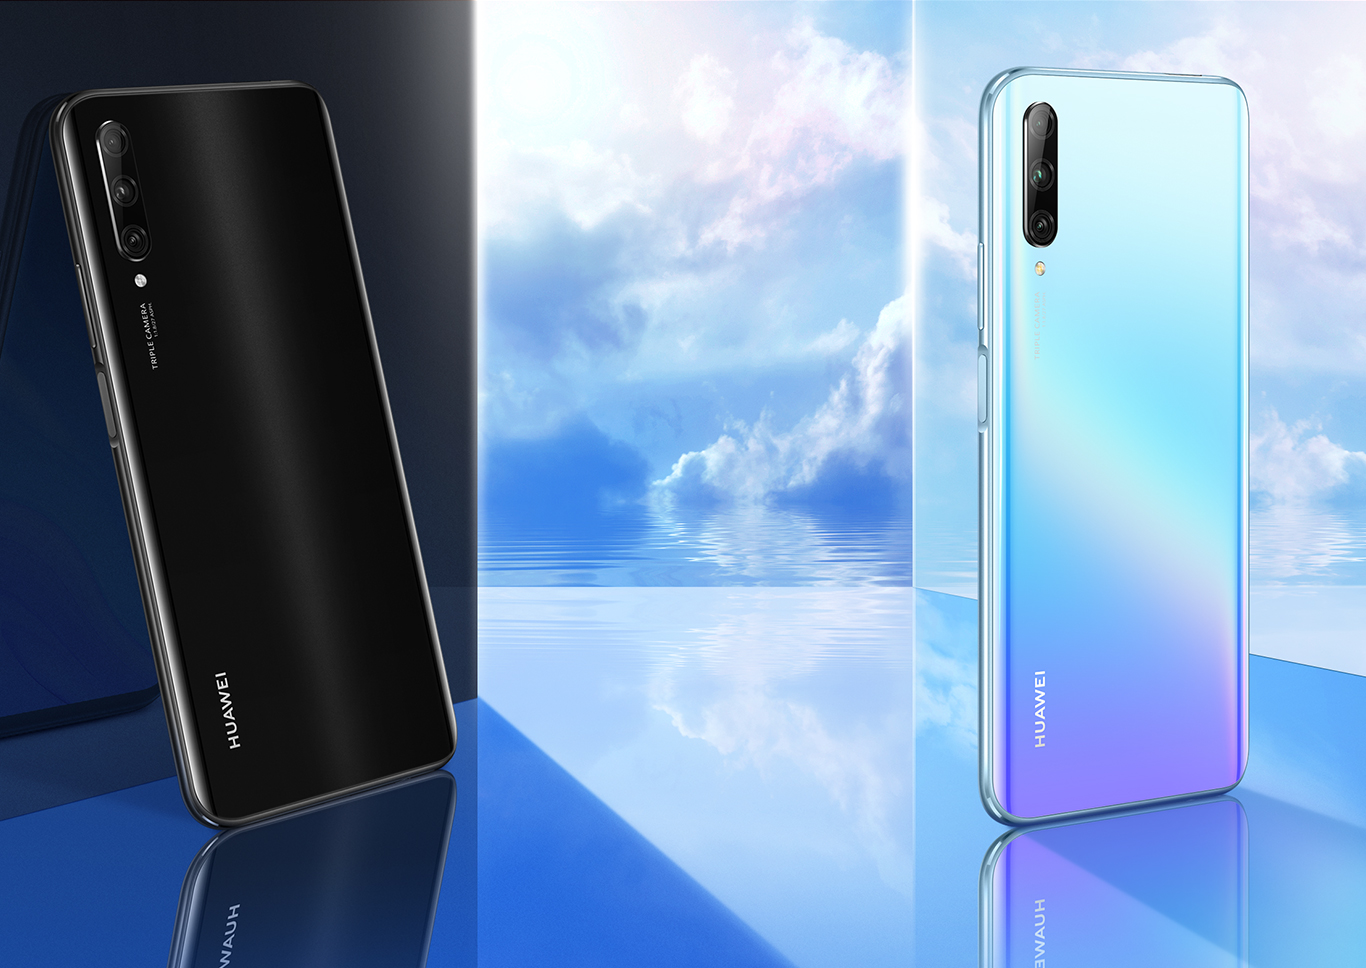 Huawei P smart Pro color